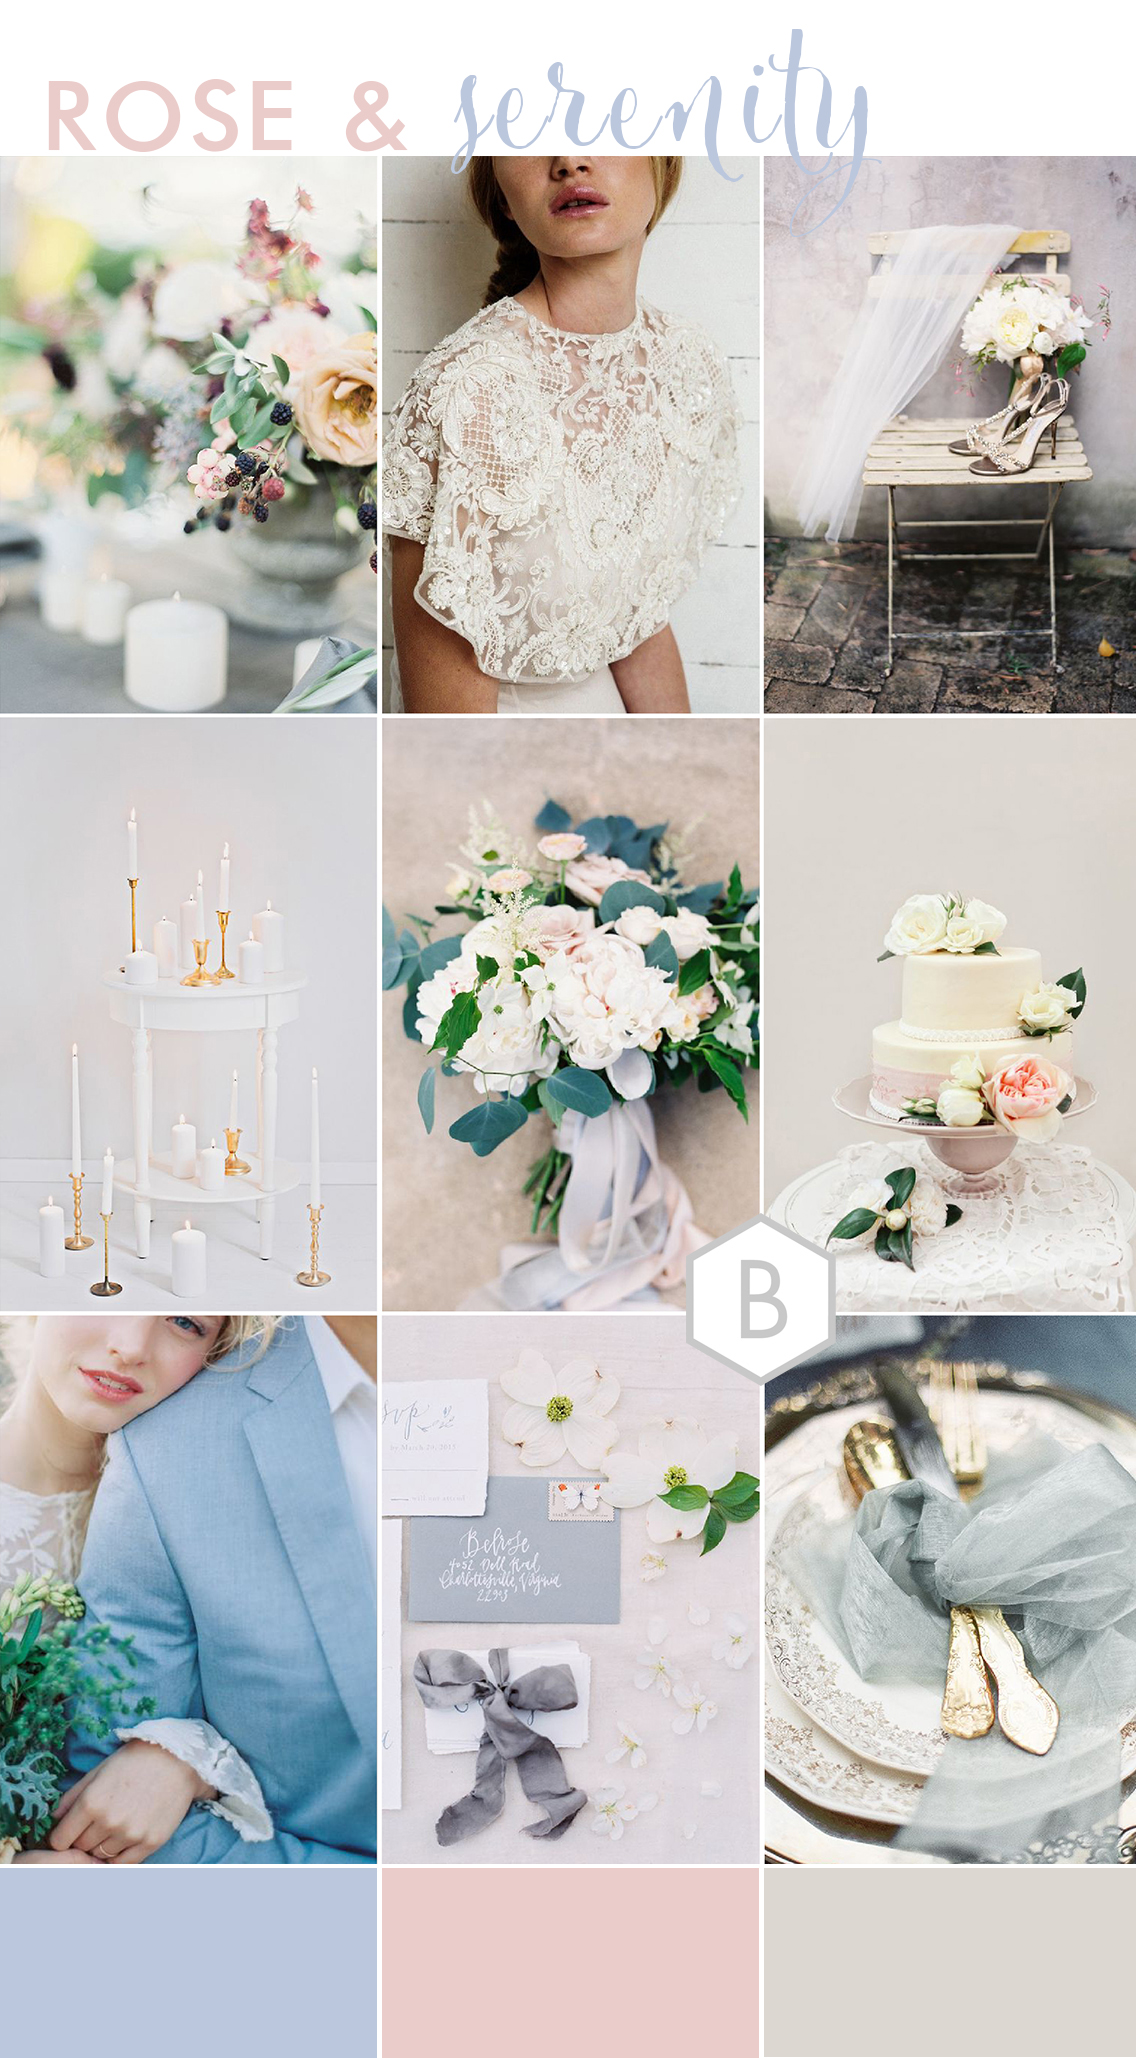 bloved-wedding-blog-rose-quartz-serenity-inspiration